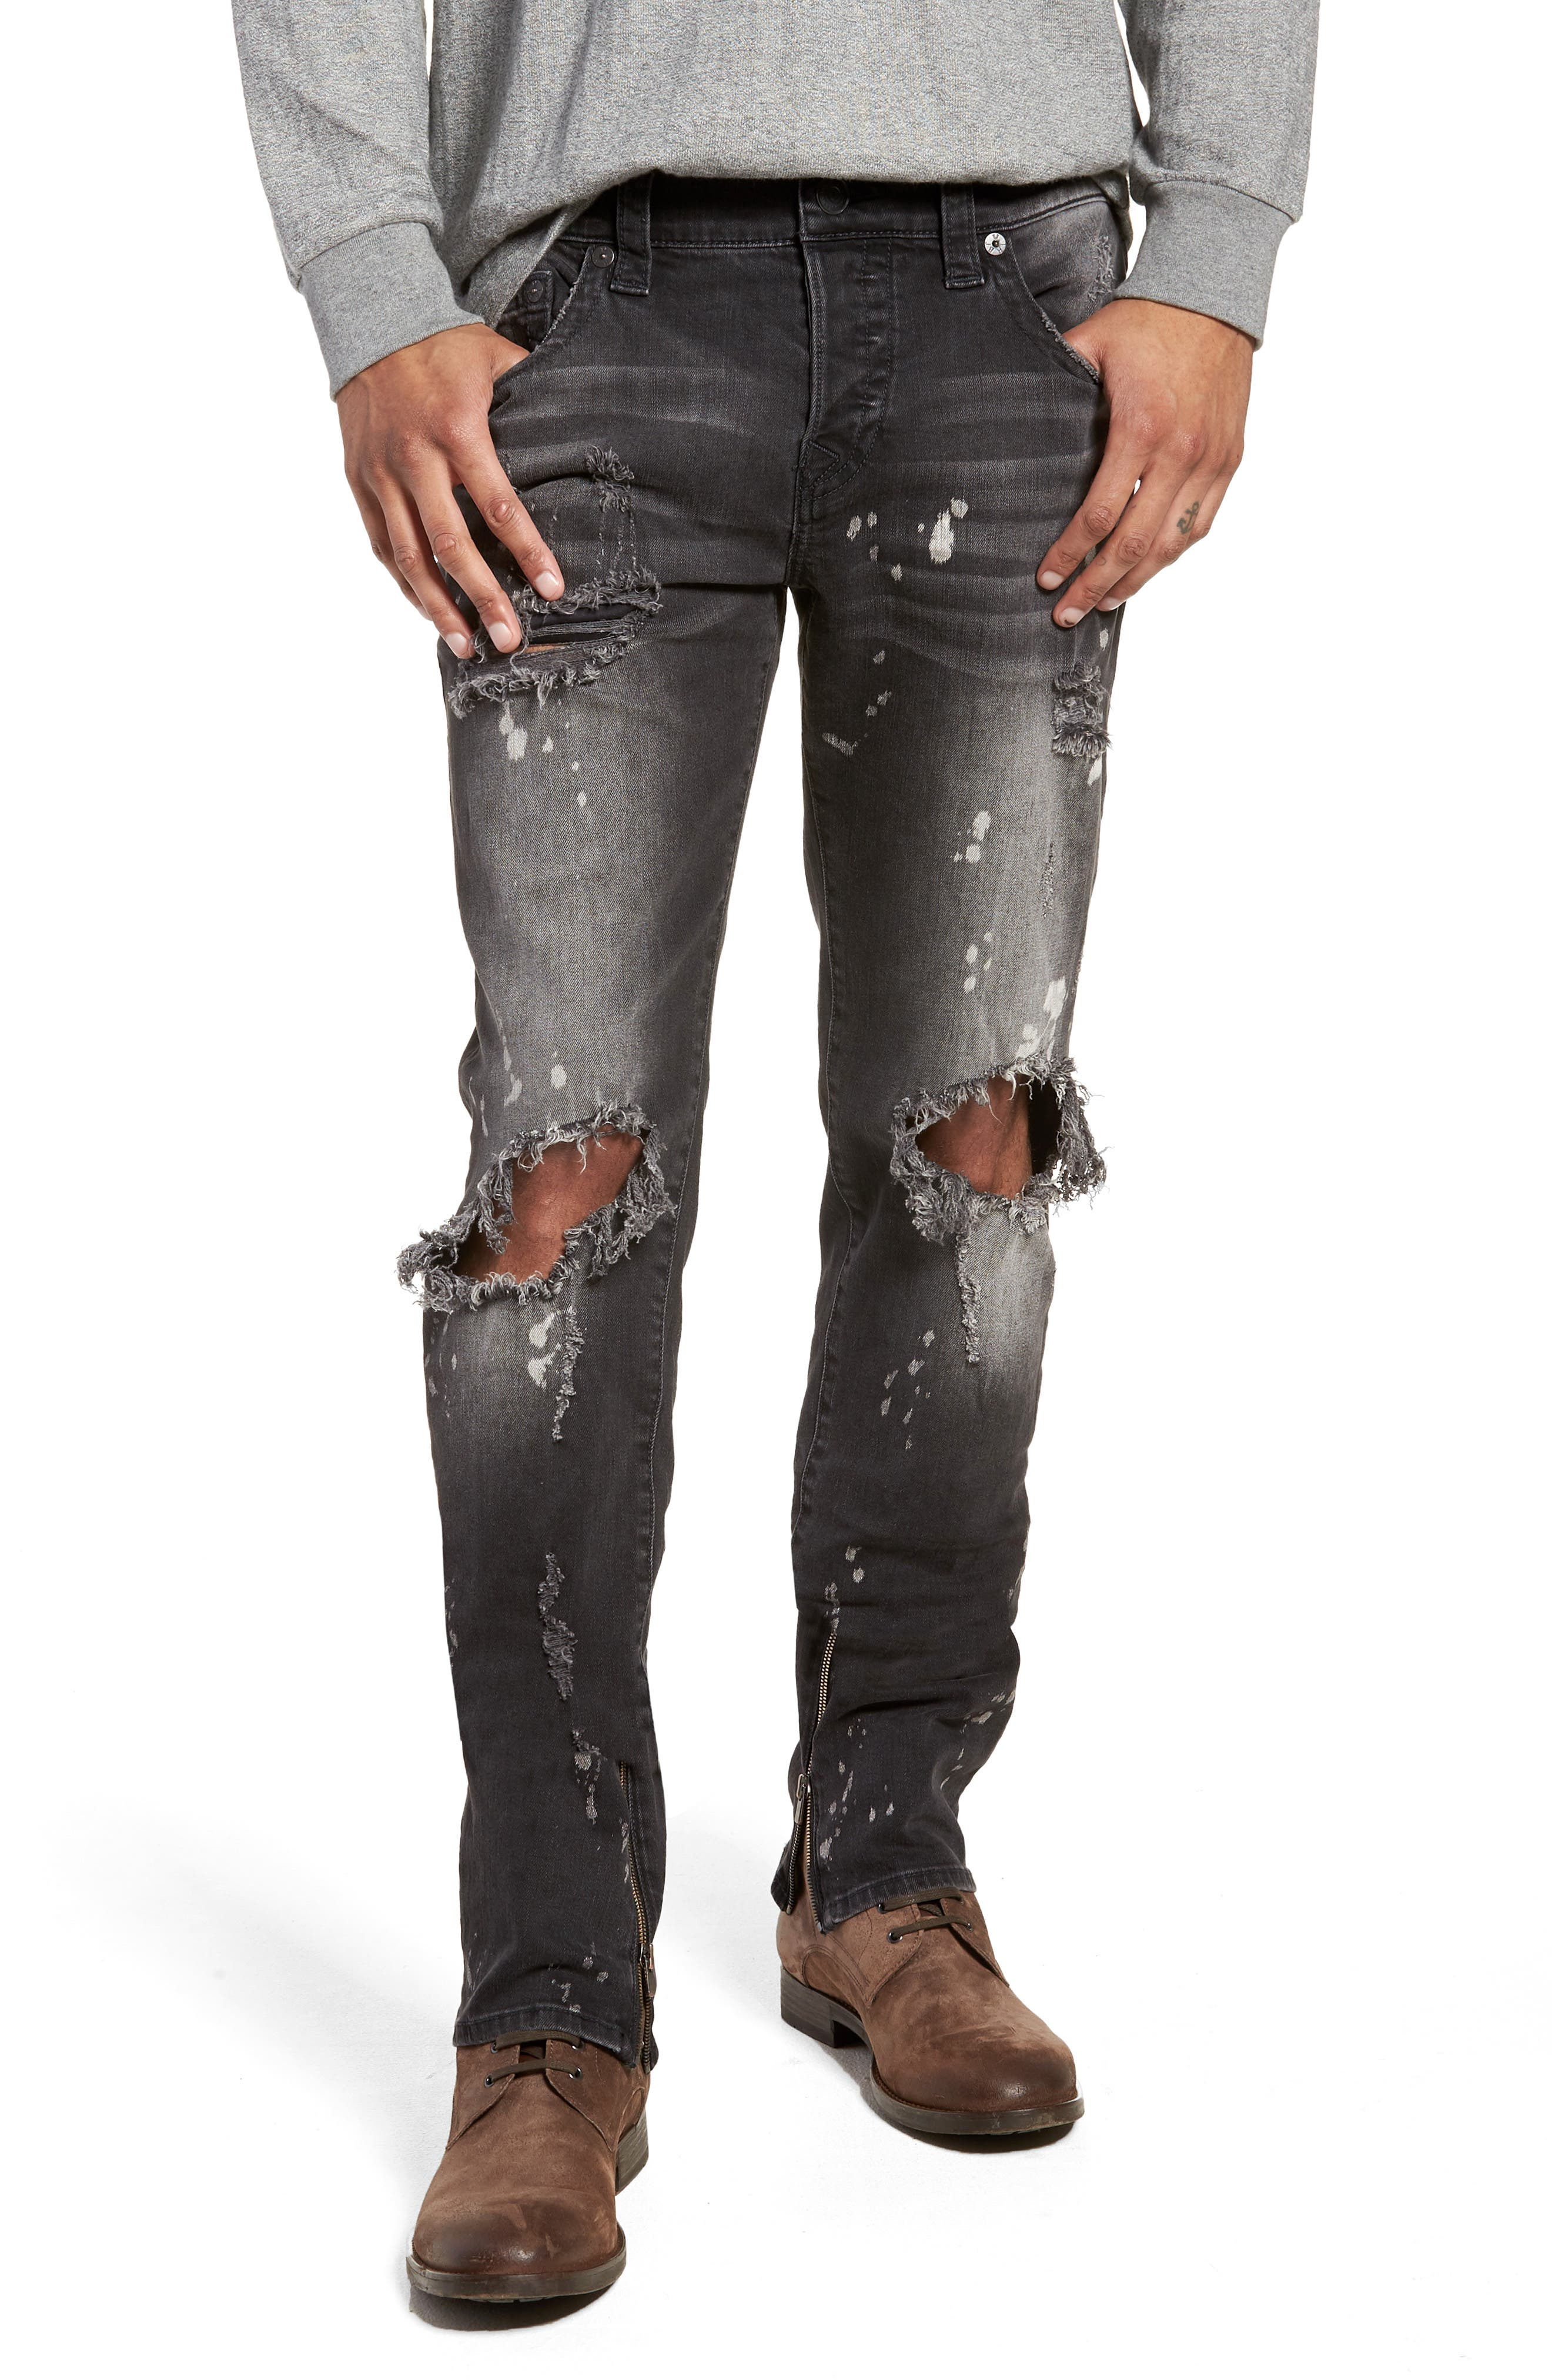 Rocco Skinny Fit Jeans,                             Main thumbnail 1, color,                             CYBER REBEL